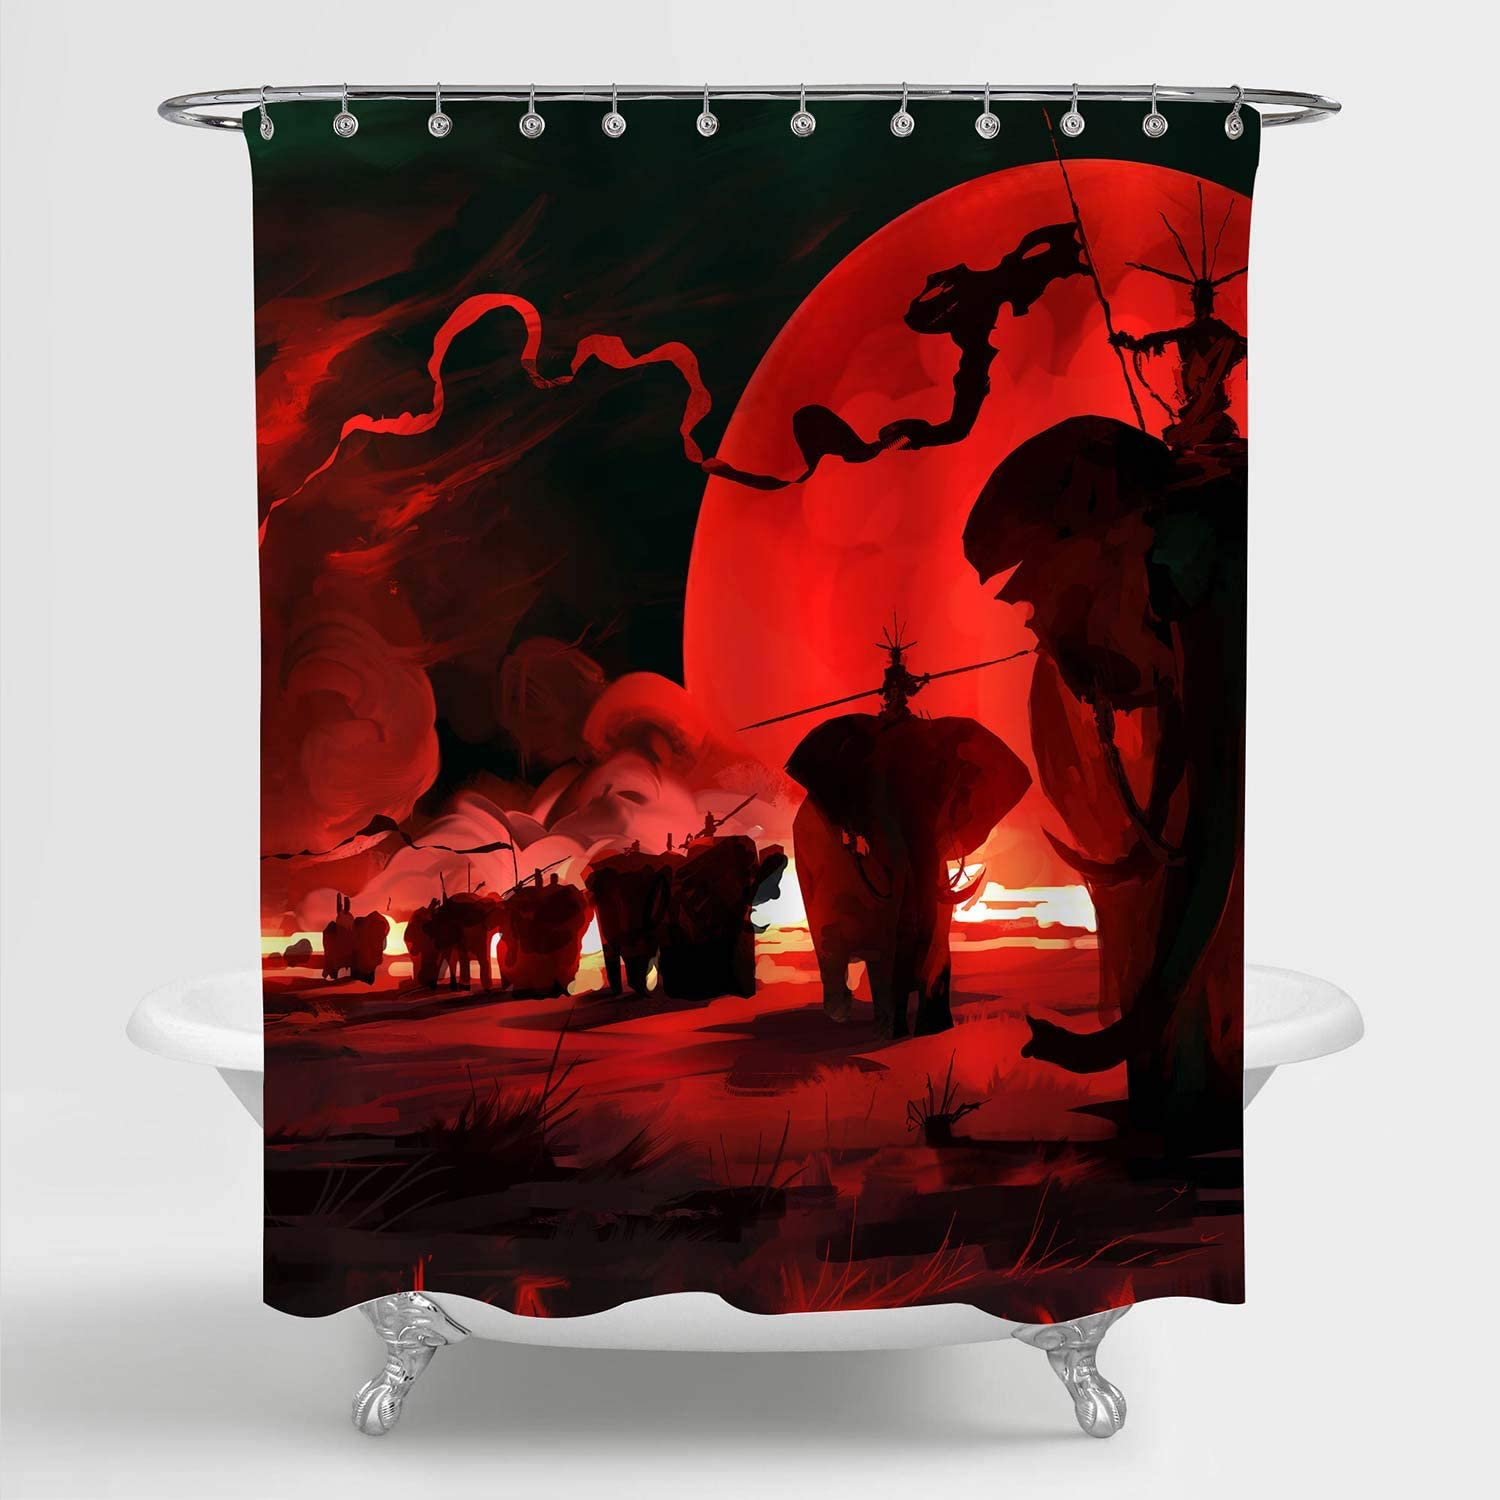 MitoVilla Elephants Shower Curtain for Red Bathroom Decor, War Animals with Red Full Moon Artwork Bathroom Accessories, Elephant Gifts for Men, Women and Kids Boys, Red Black, 72